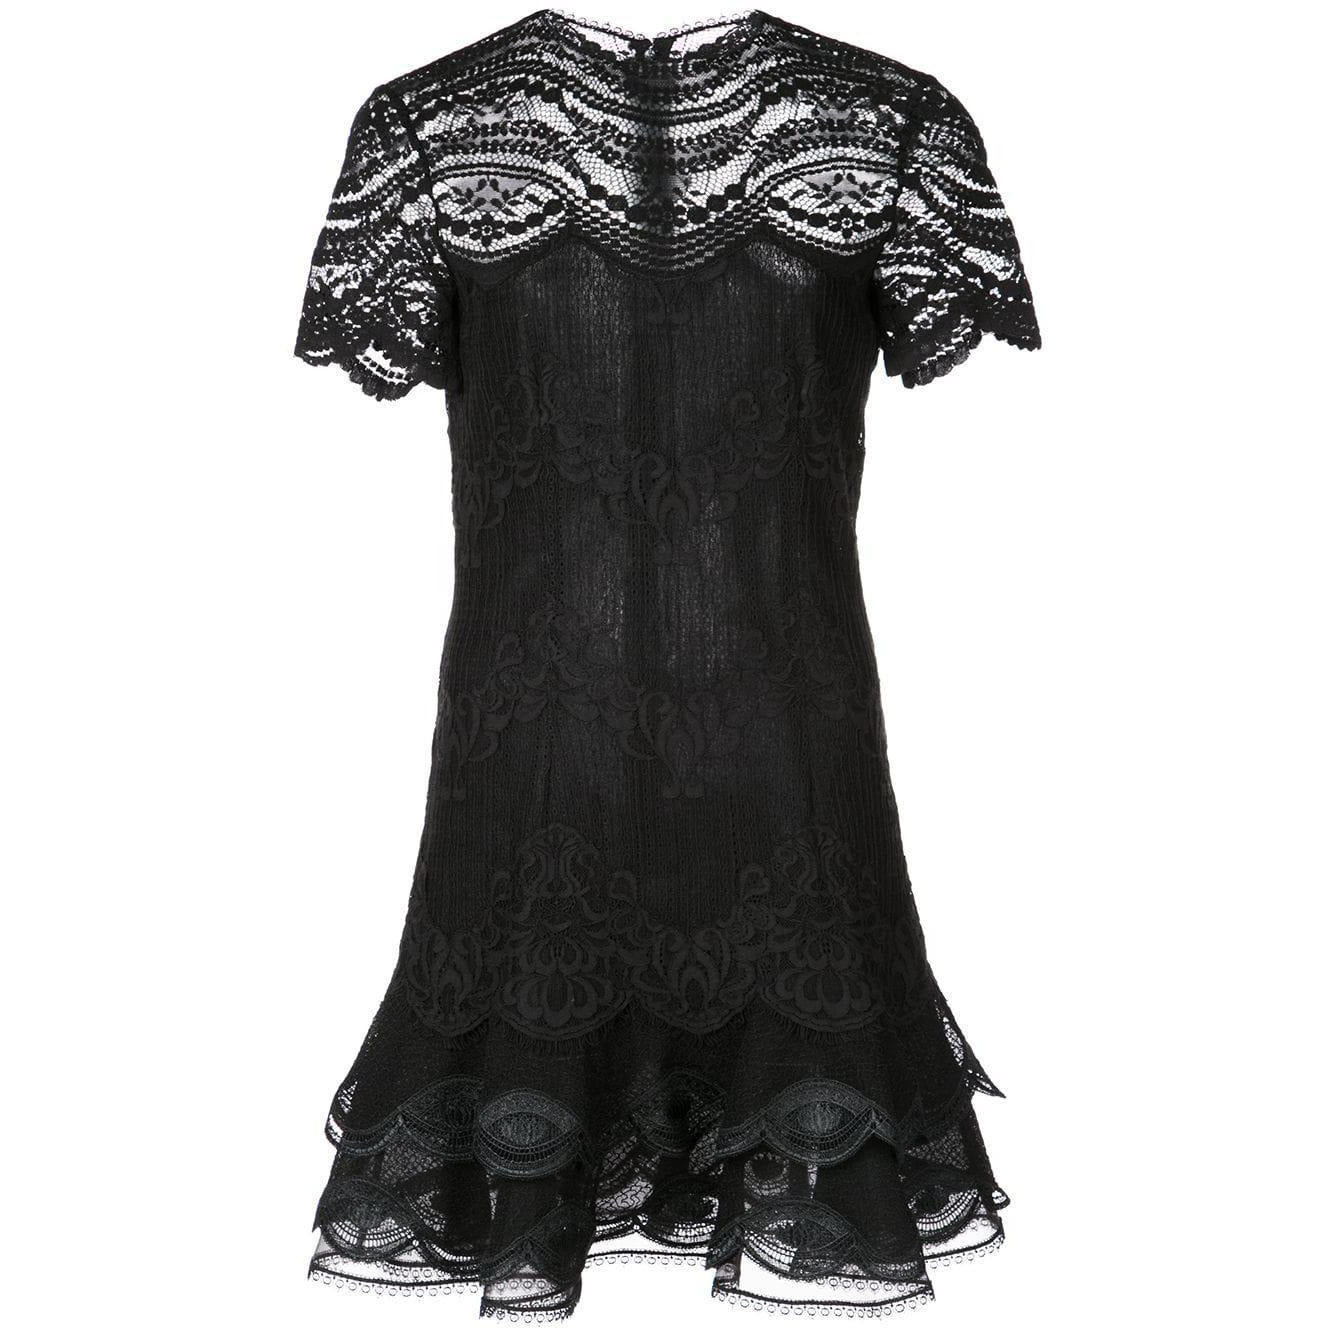 Mixed Lace Cap Sleeve Mini Dress Black